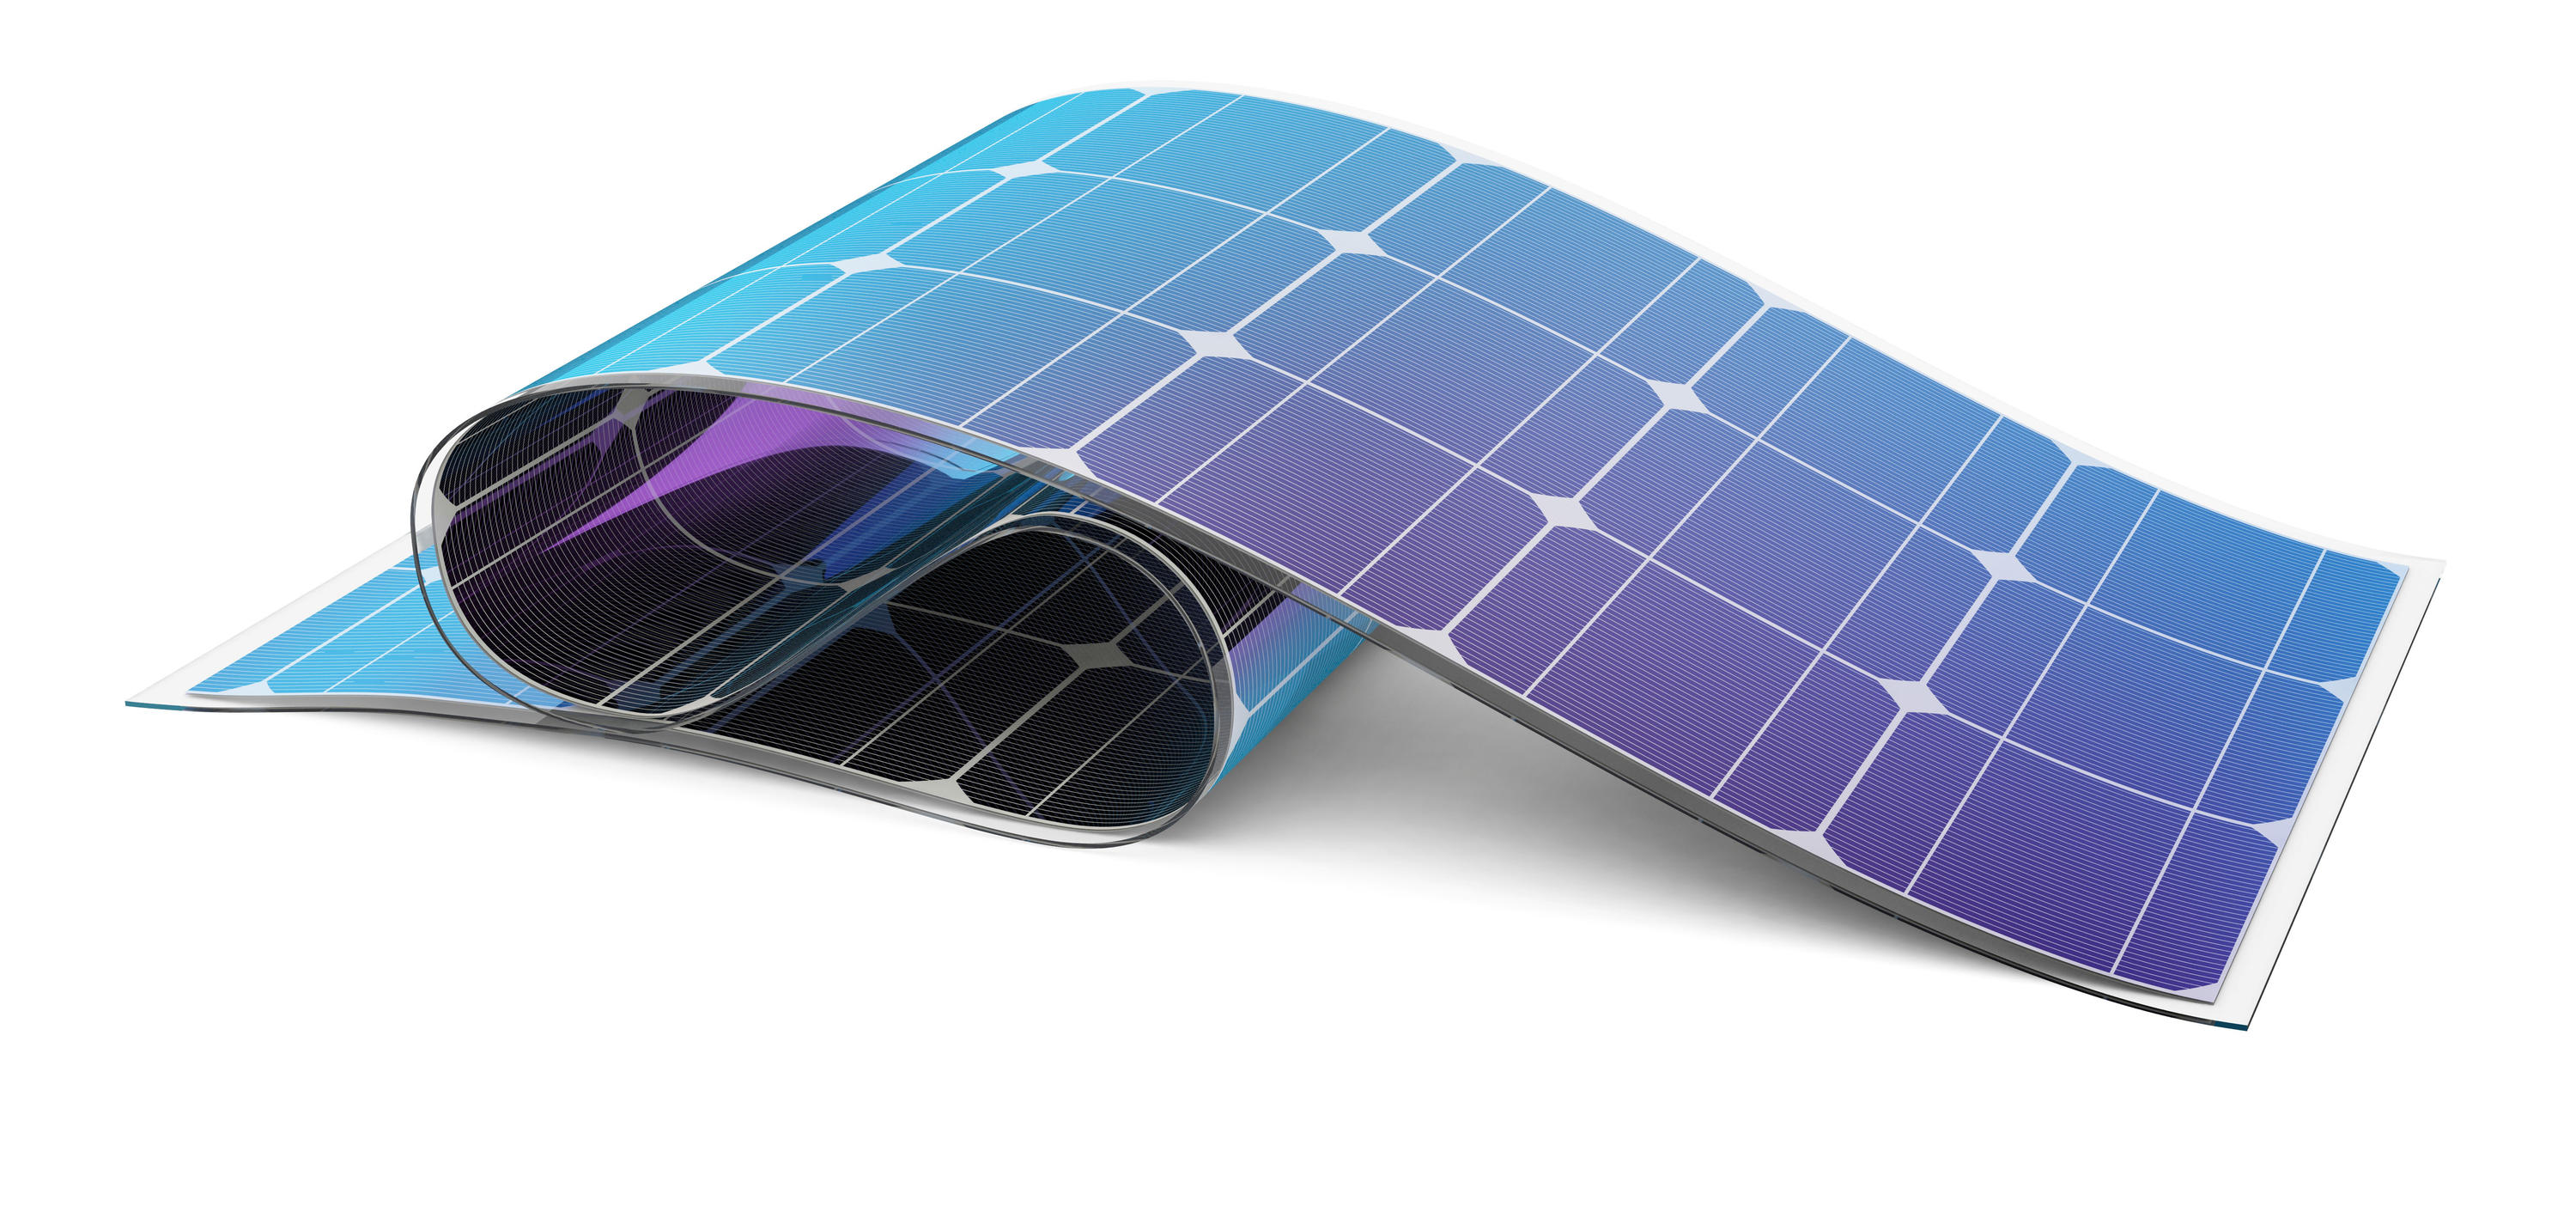 An illustration of a plastic, flexible solar cell.